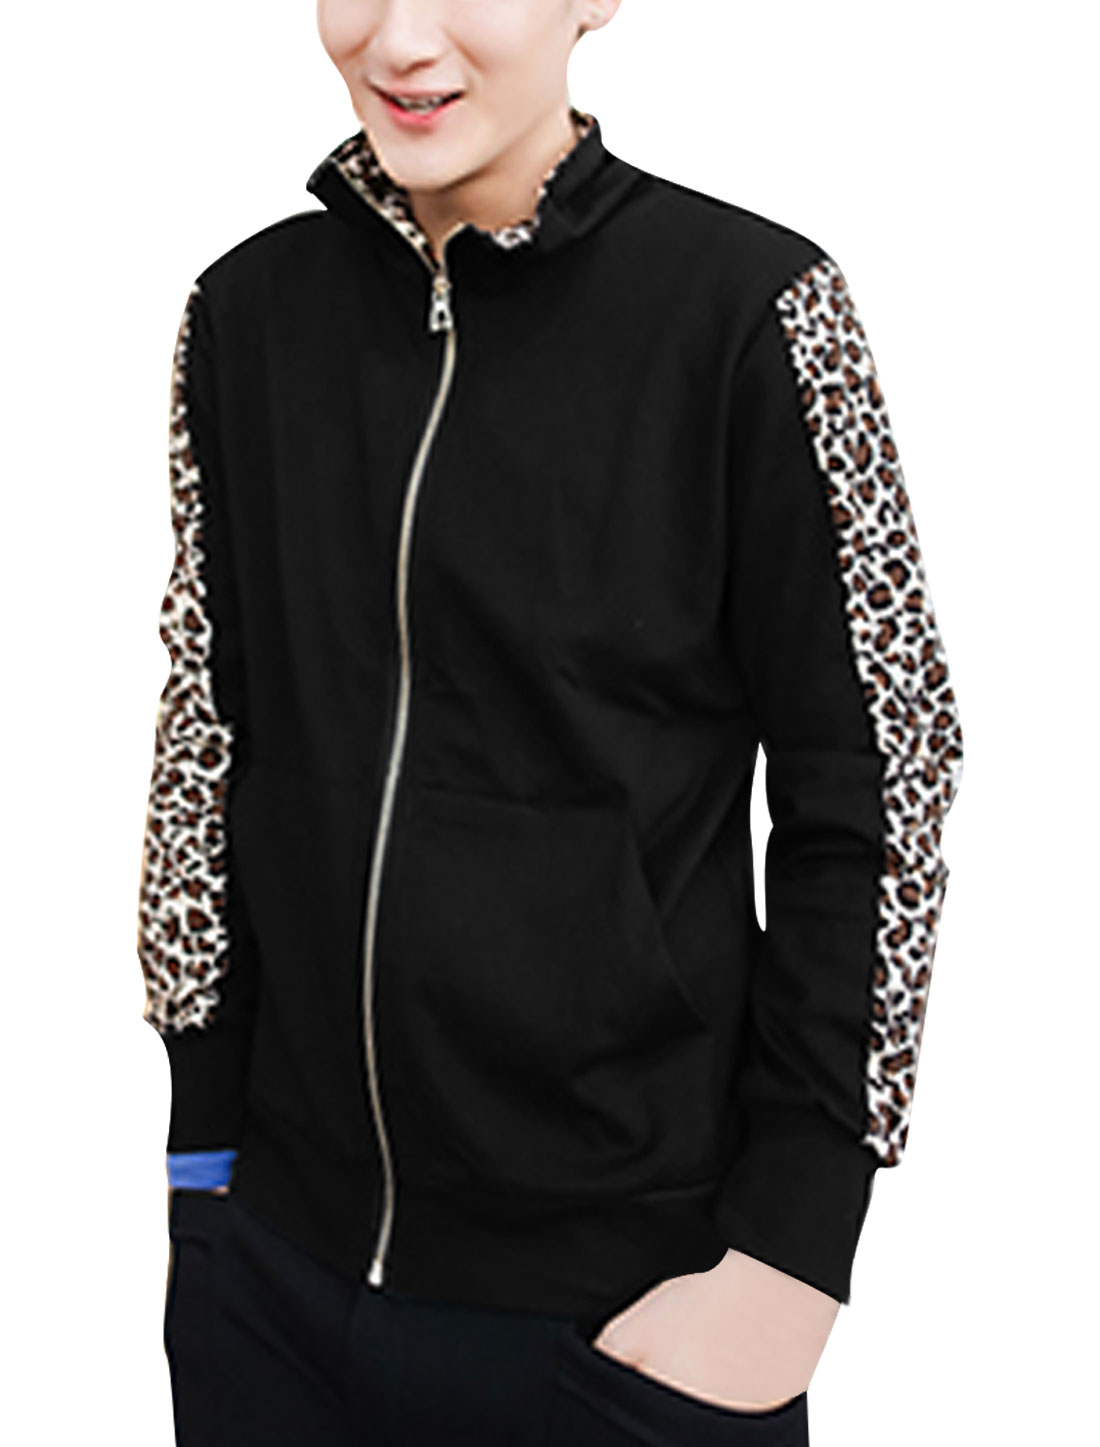 Man Stand Collar Long Sleeve Leopard Pattern Splice Black Cardigan Jacket M